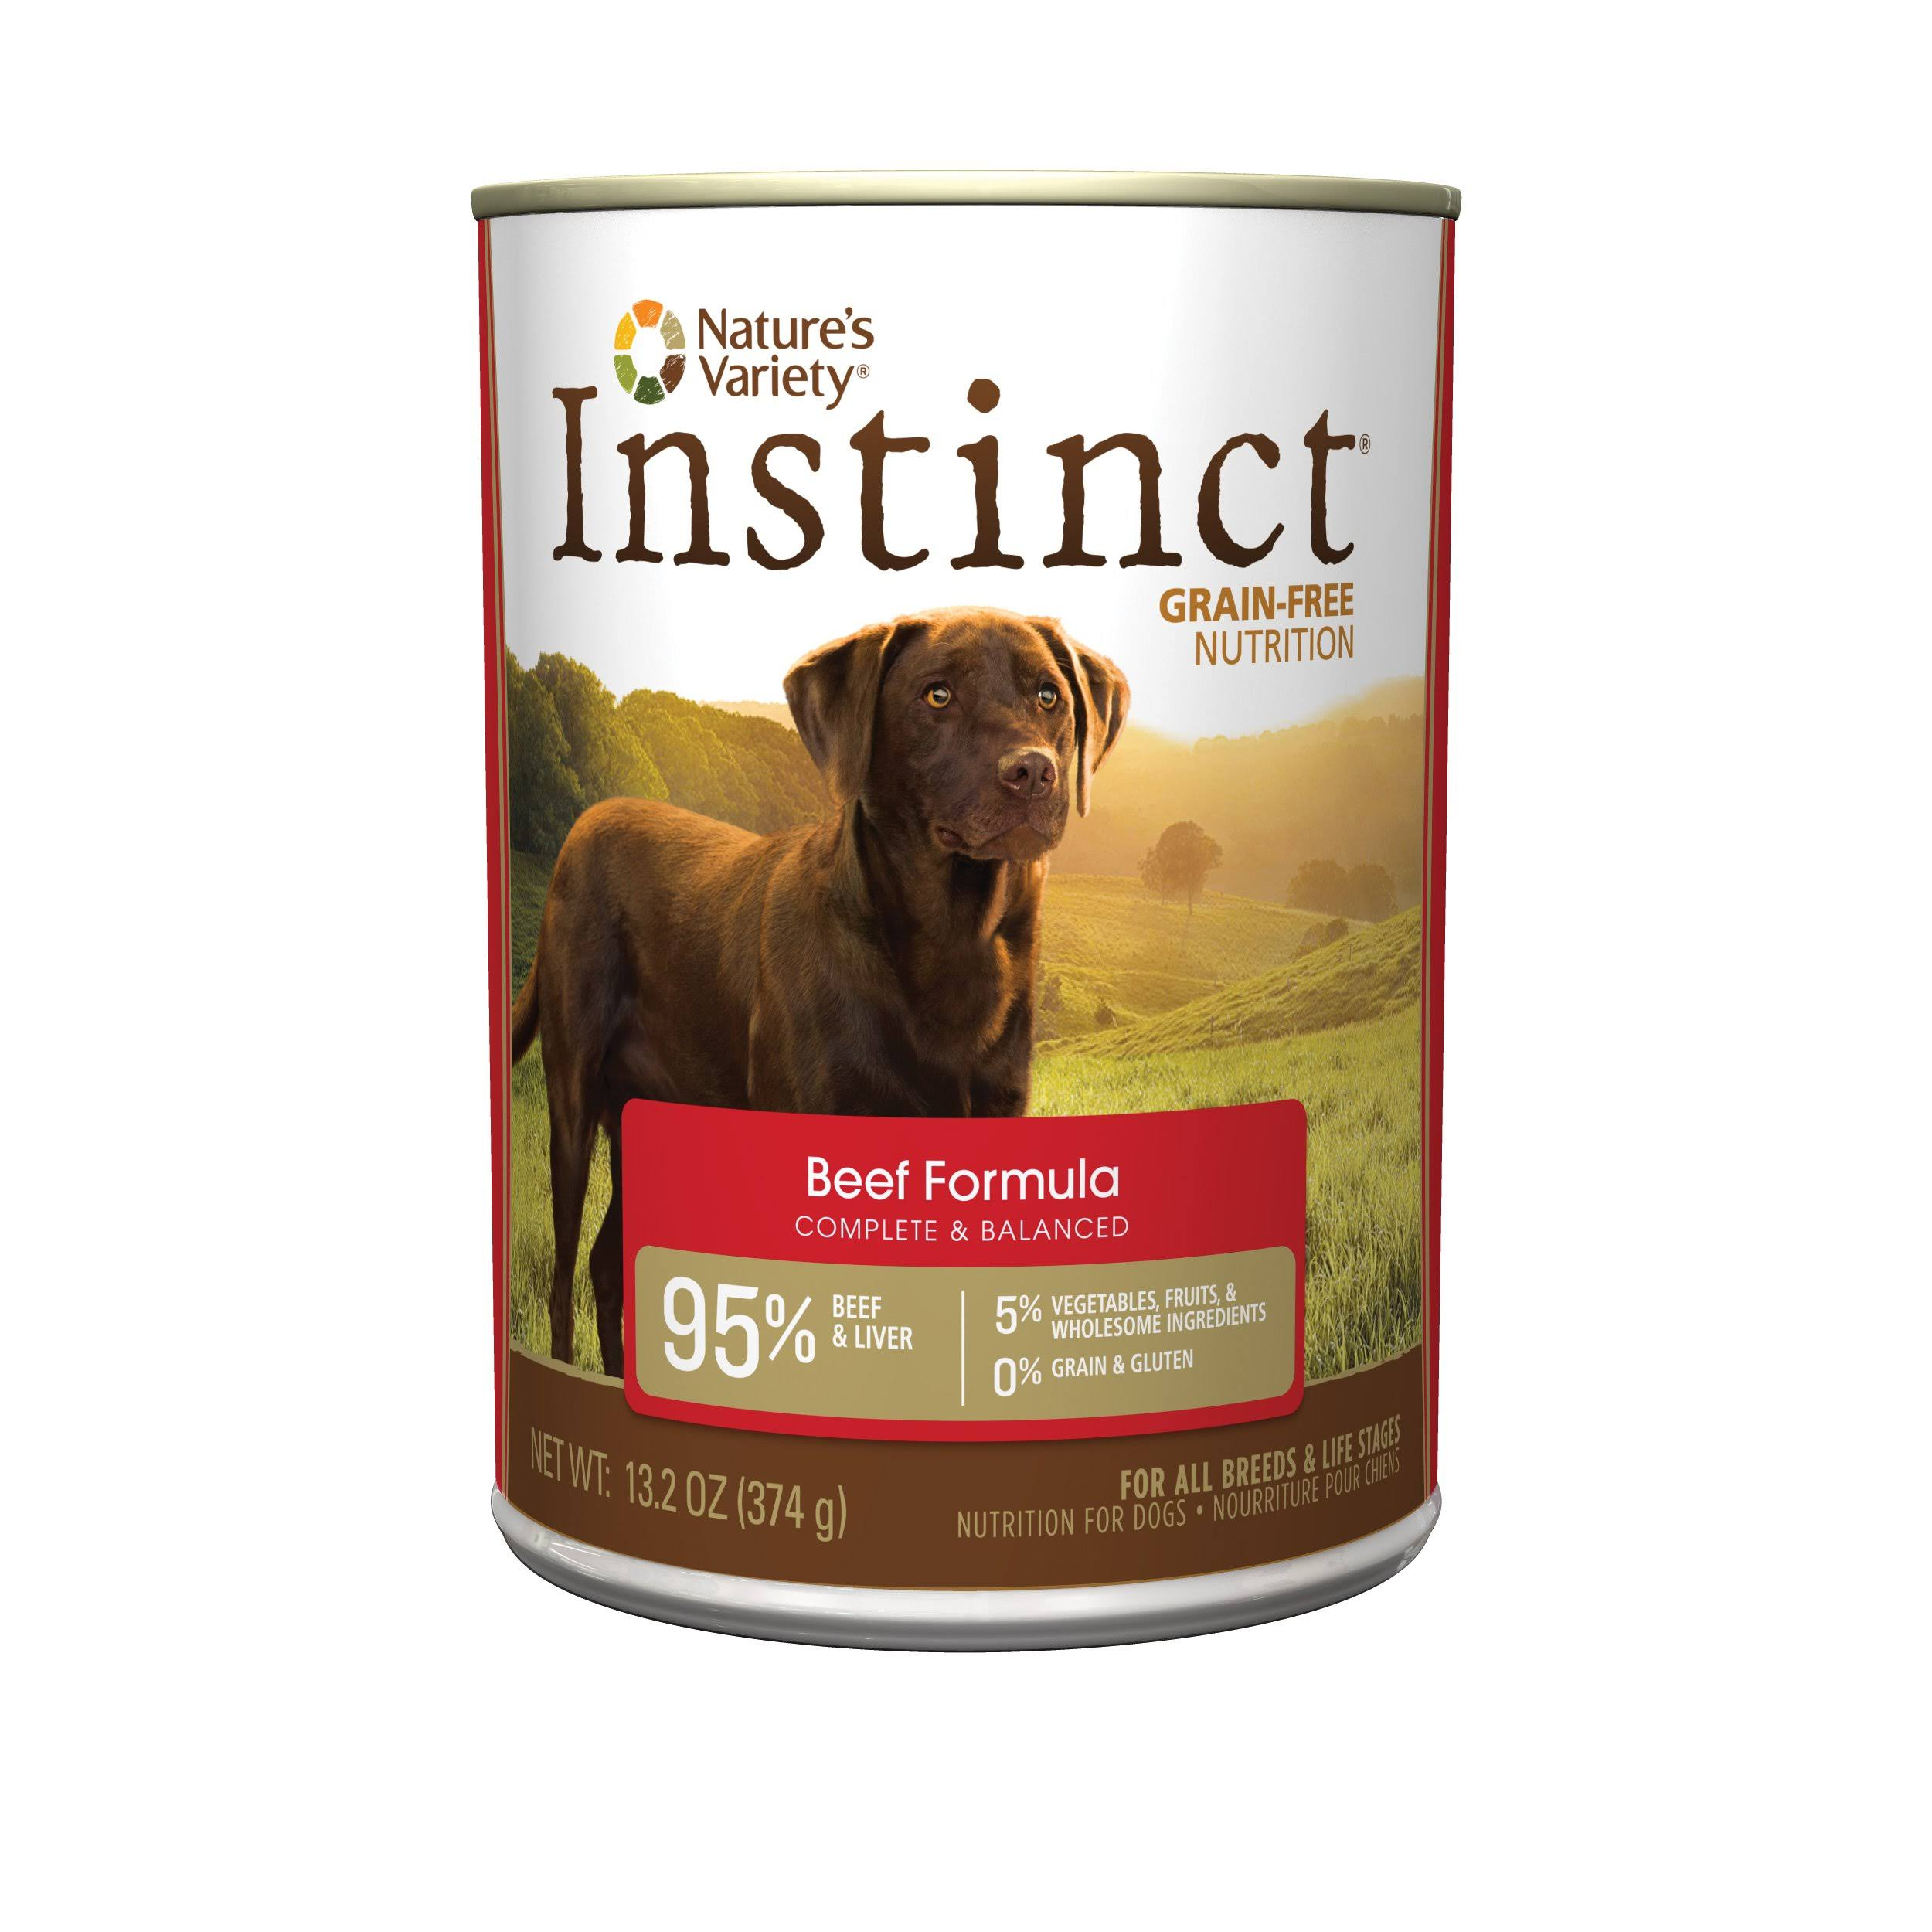 Nature's Variety Instinct Grain-Free Canned Dog Food - Beef, 13.2-oz, 12 Pack